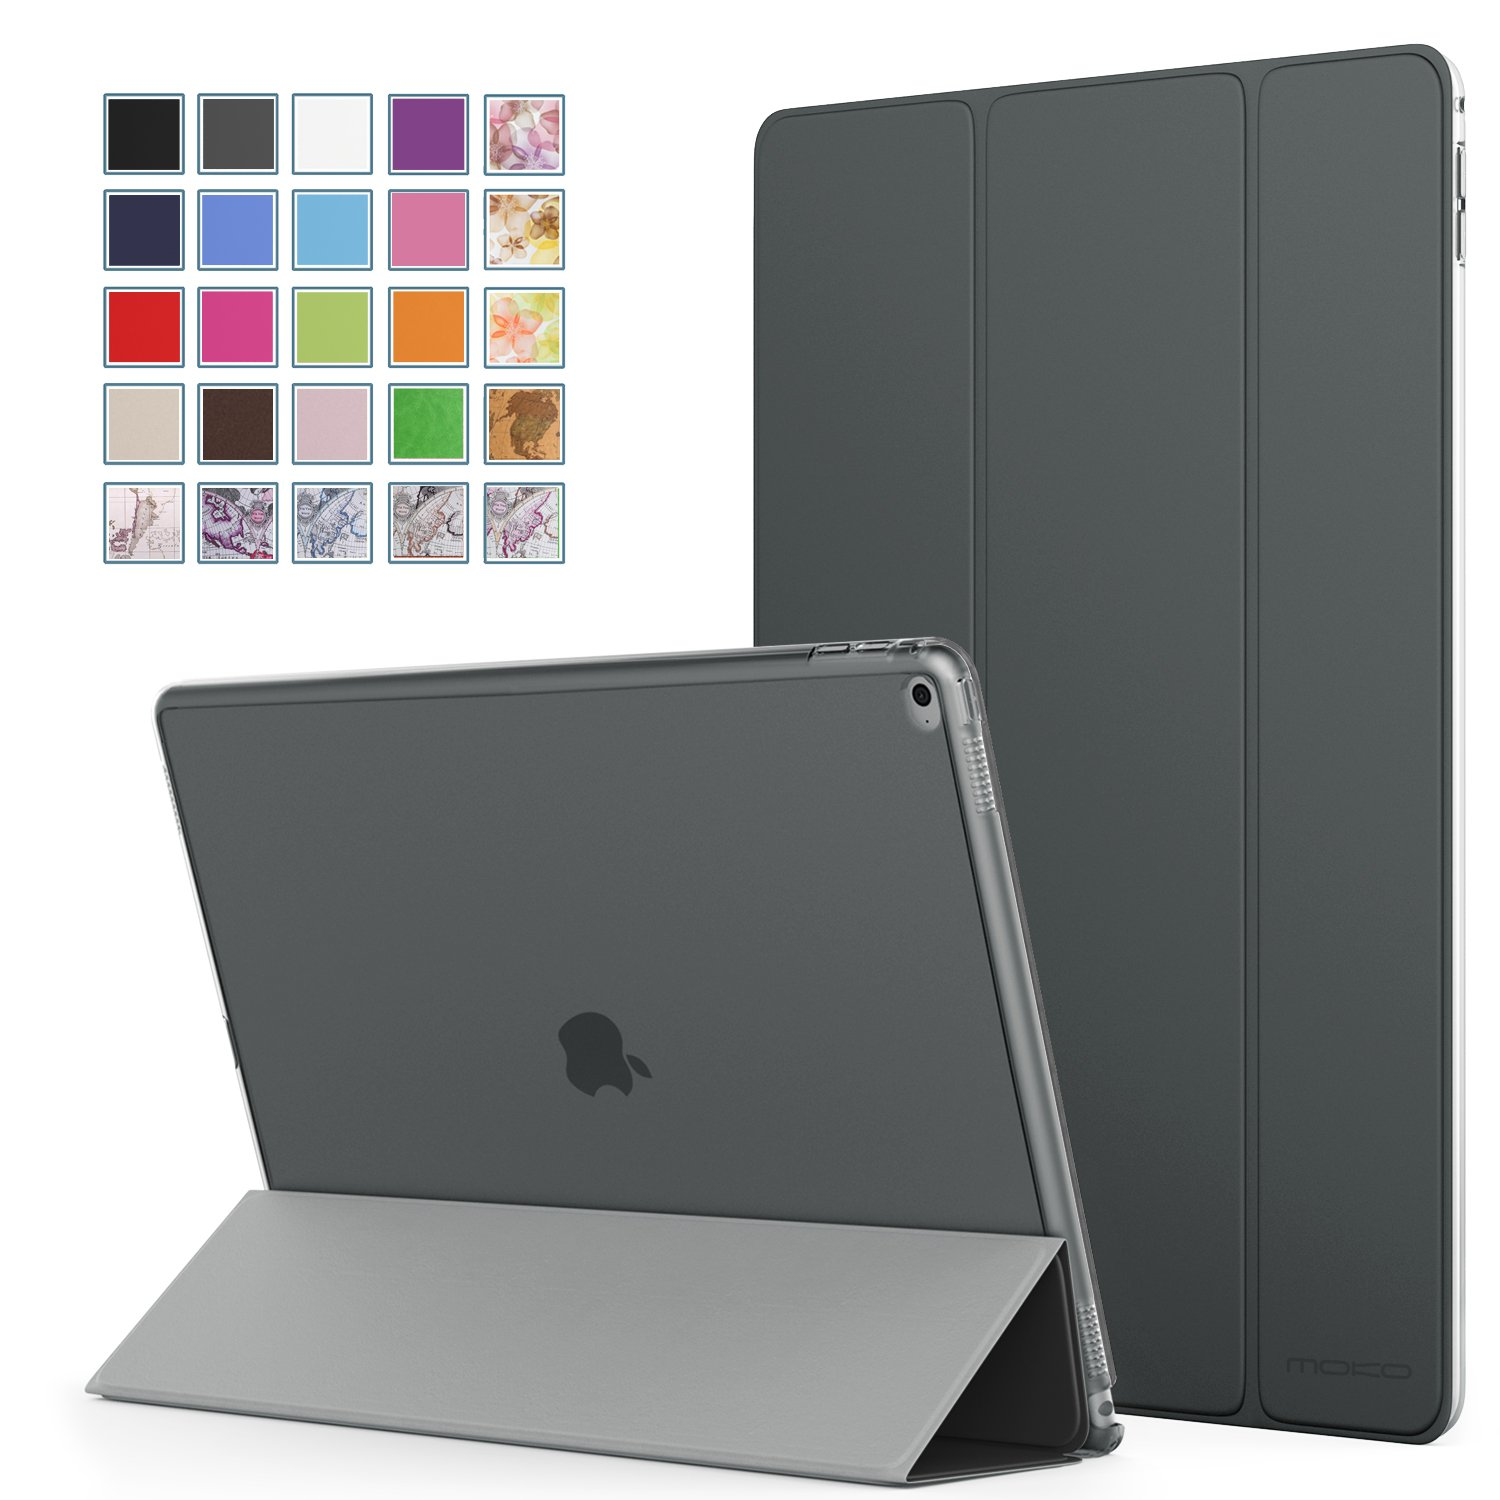 iPad Pro 9.7 Case - MoKo Ultra Slim Lightweight Smart-shell Cover with Frosted Hard Polycarbonate Protector for Apple iPad Pro 9.7 Inch 2016 Release Tablet, Space GRAY